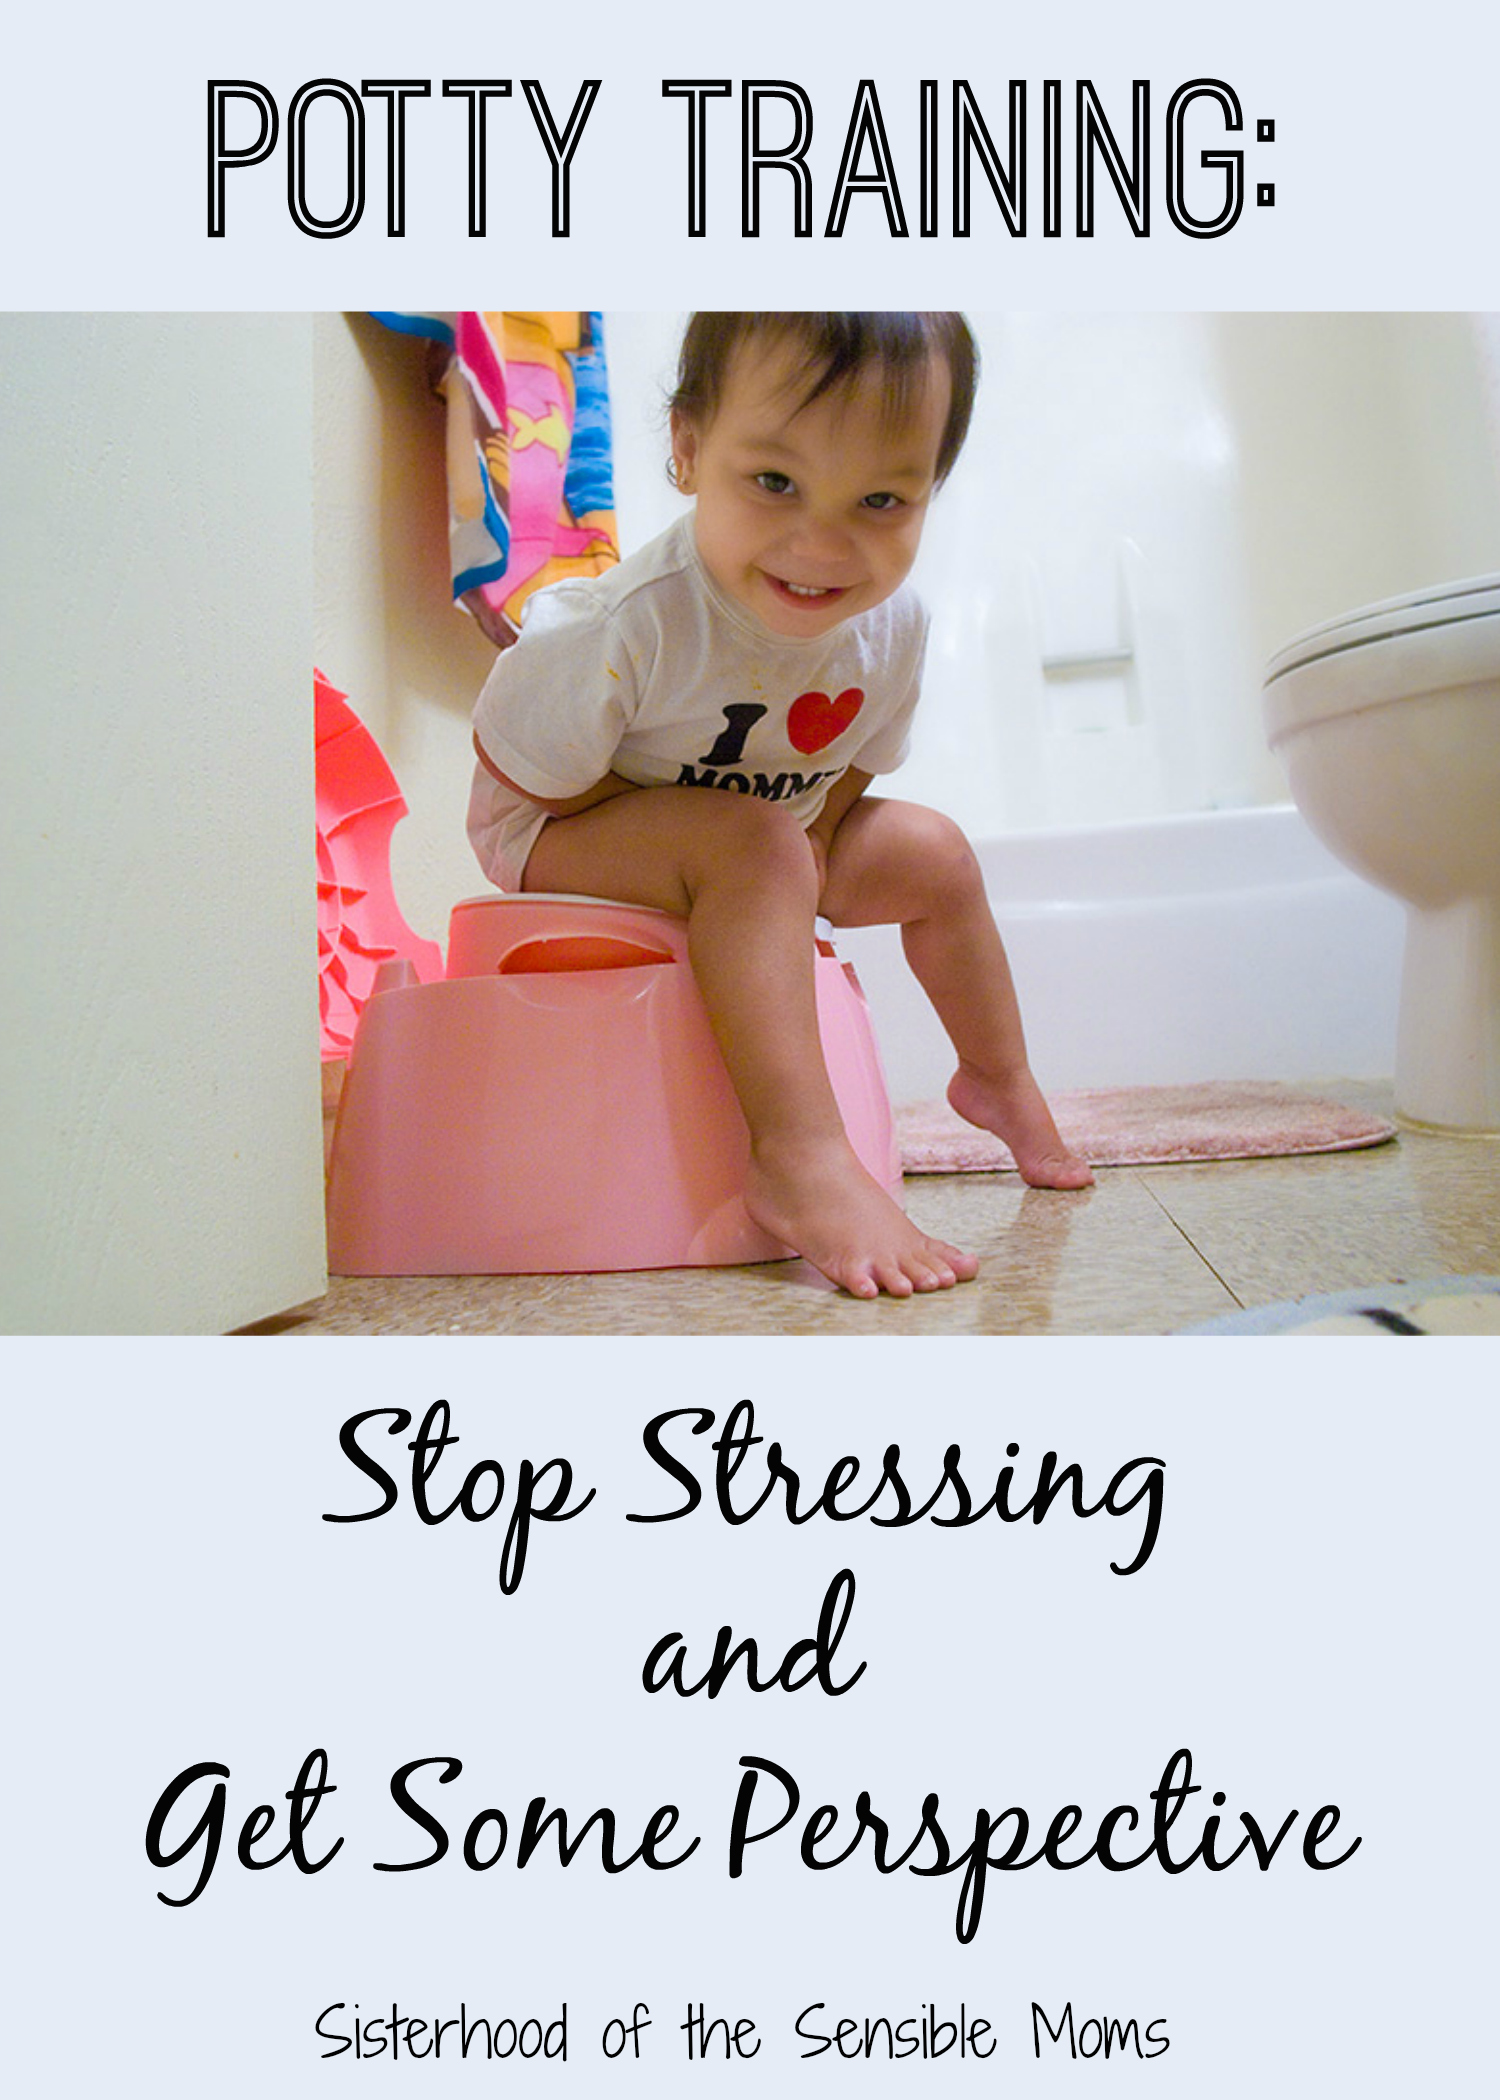 Potty Training: Stop Stressing and Get Some Perspective. Parenting advice and tips for those of us with a sense of humor. Sisterhood of the Sensible Moms